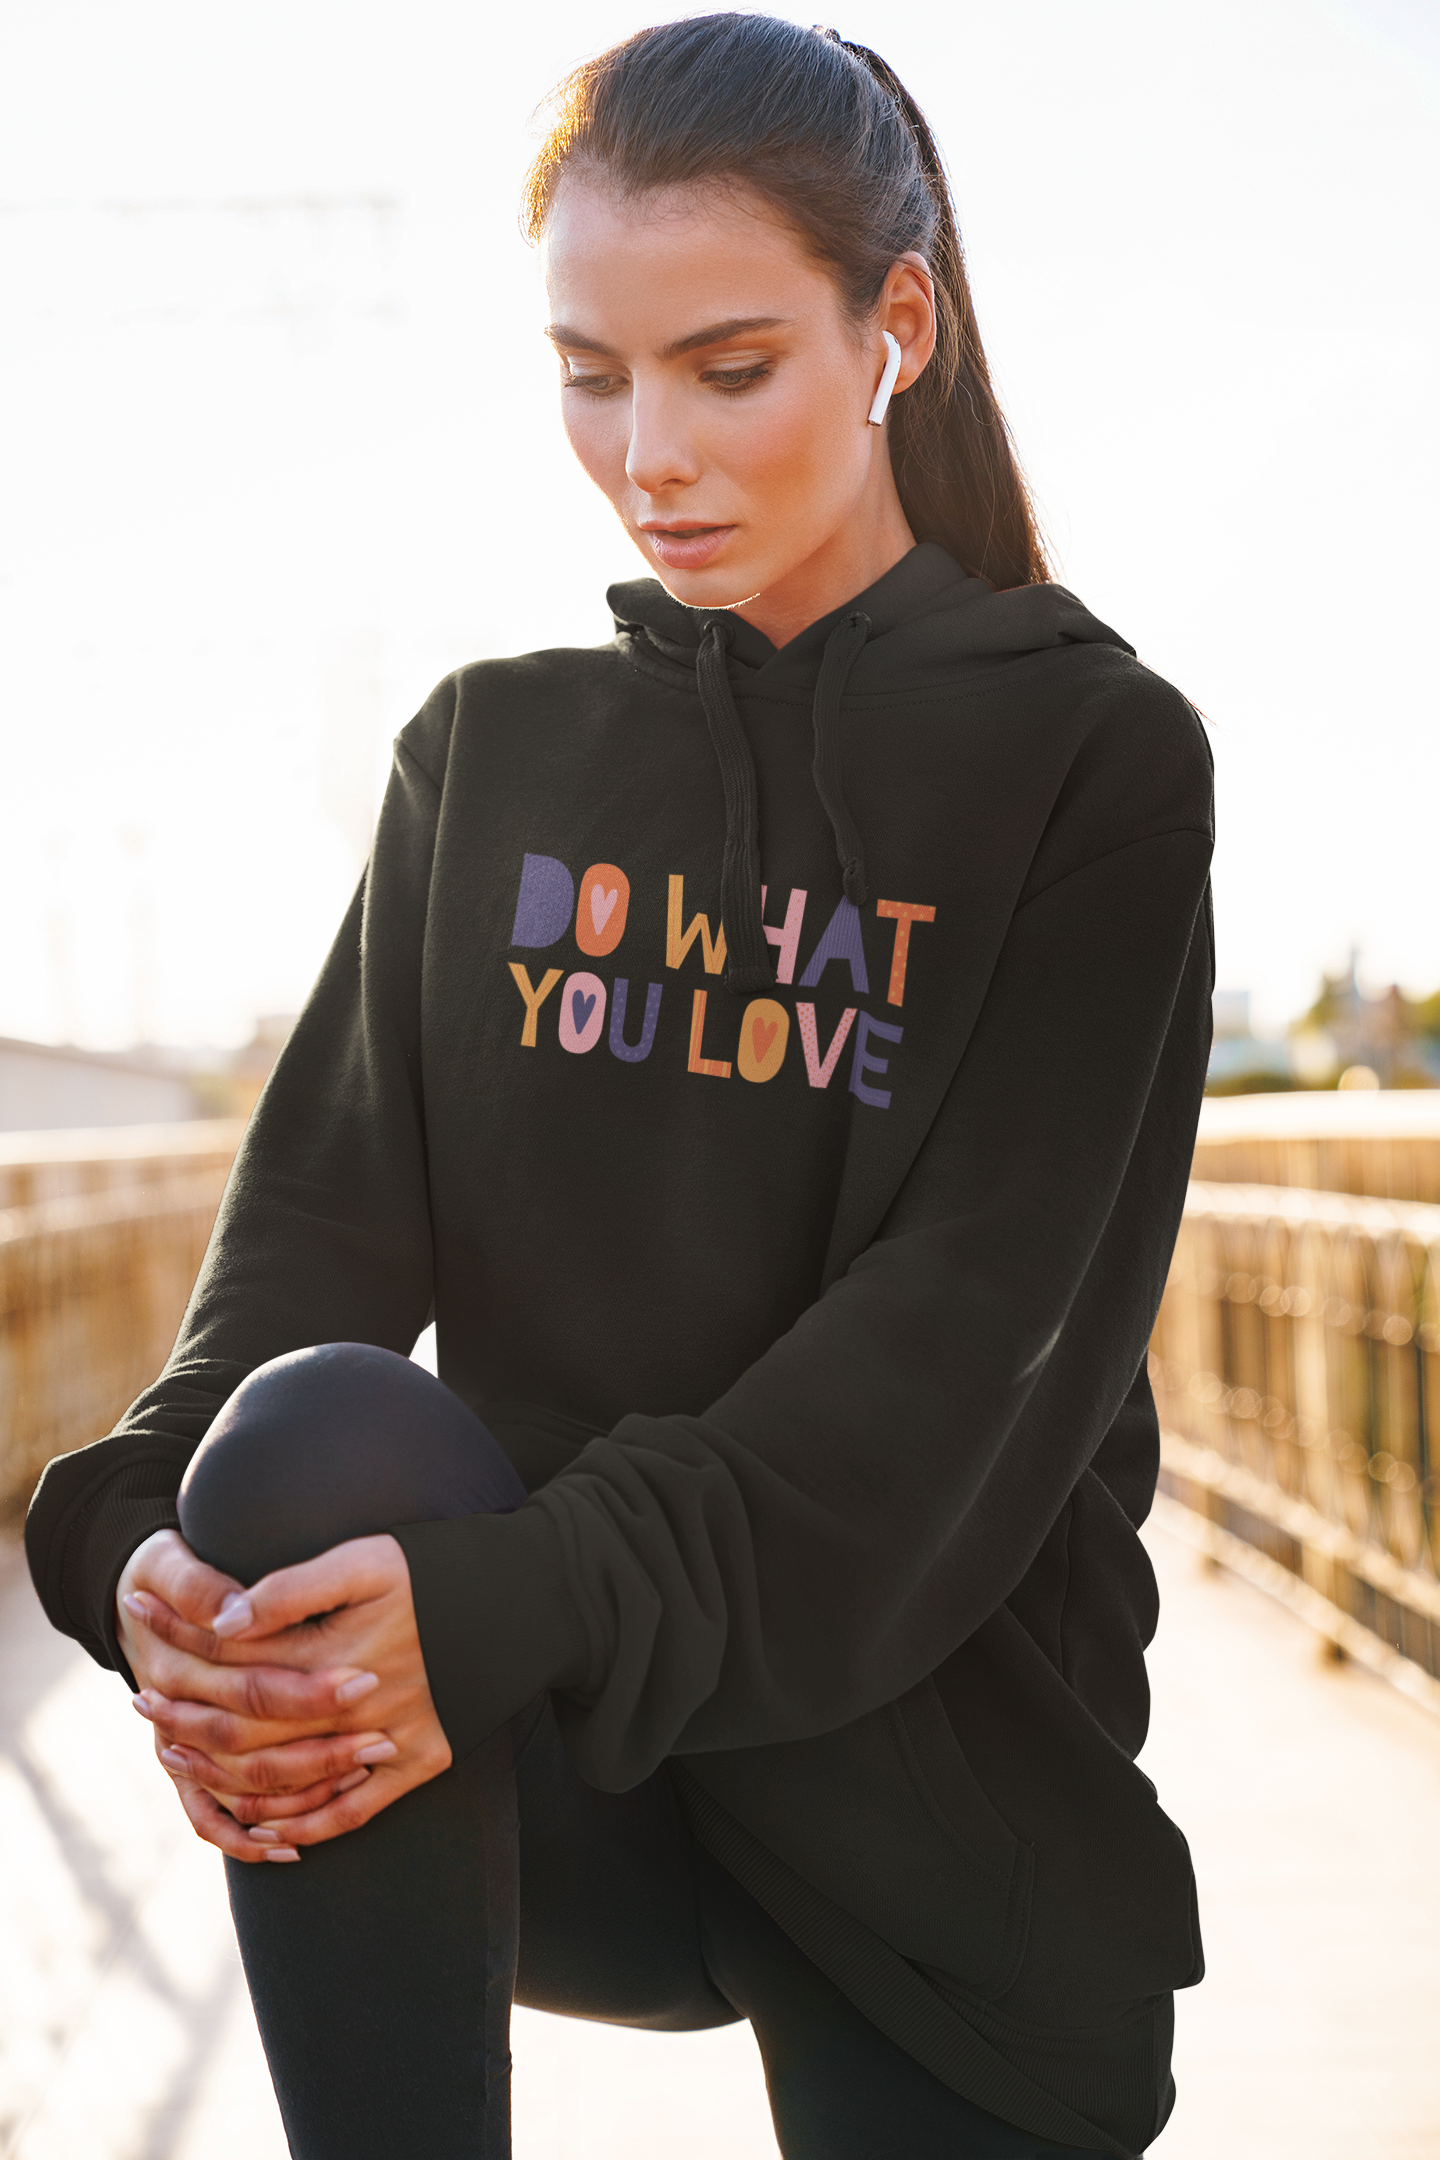 Amrak Women's Printed Hoodie - Do What You Love